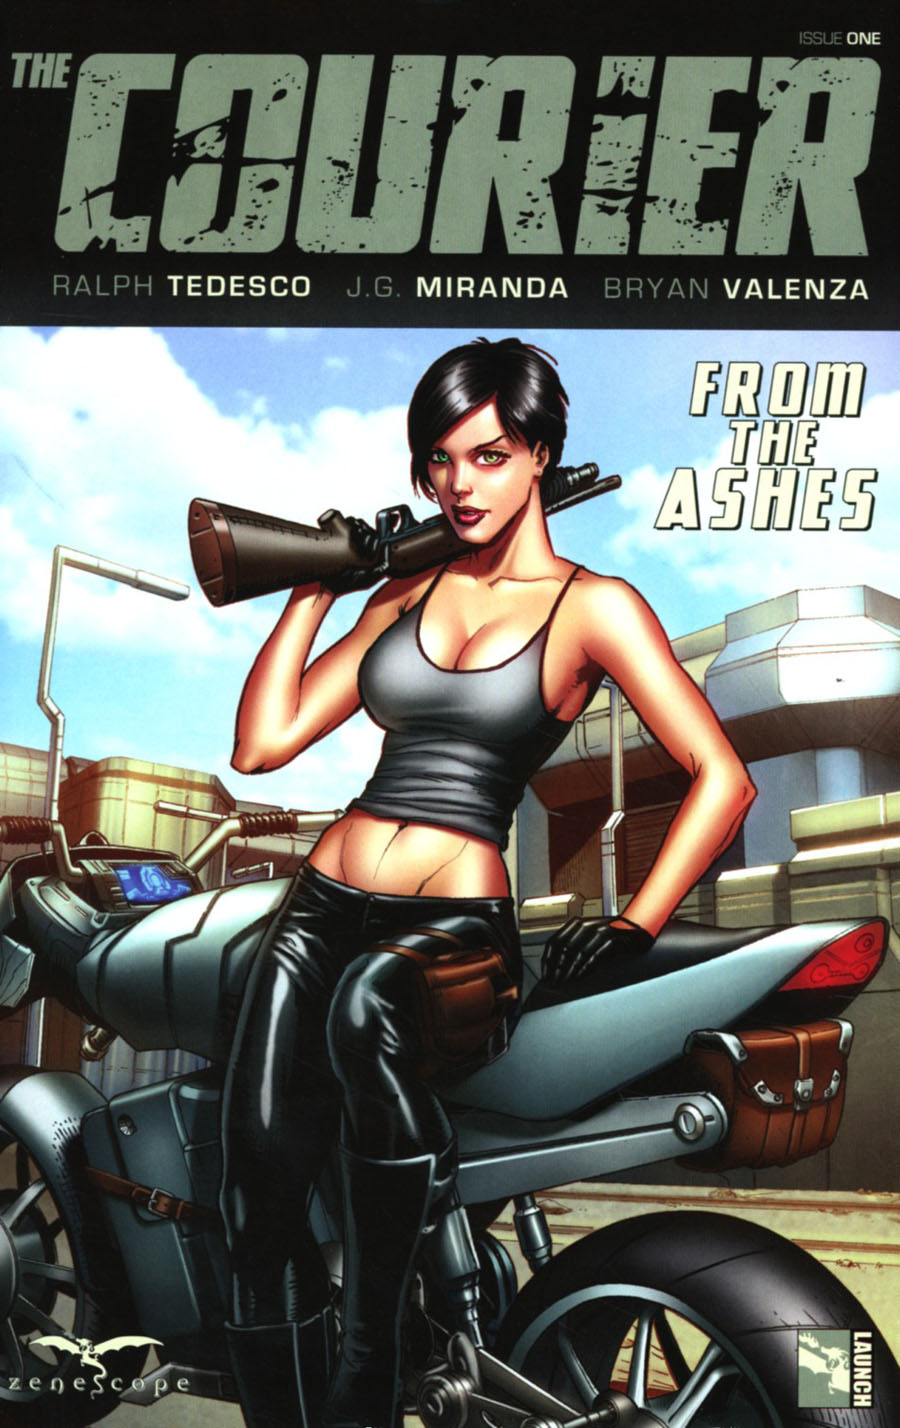 Courier From The Ashes #1 Cover C Anthony Spay